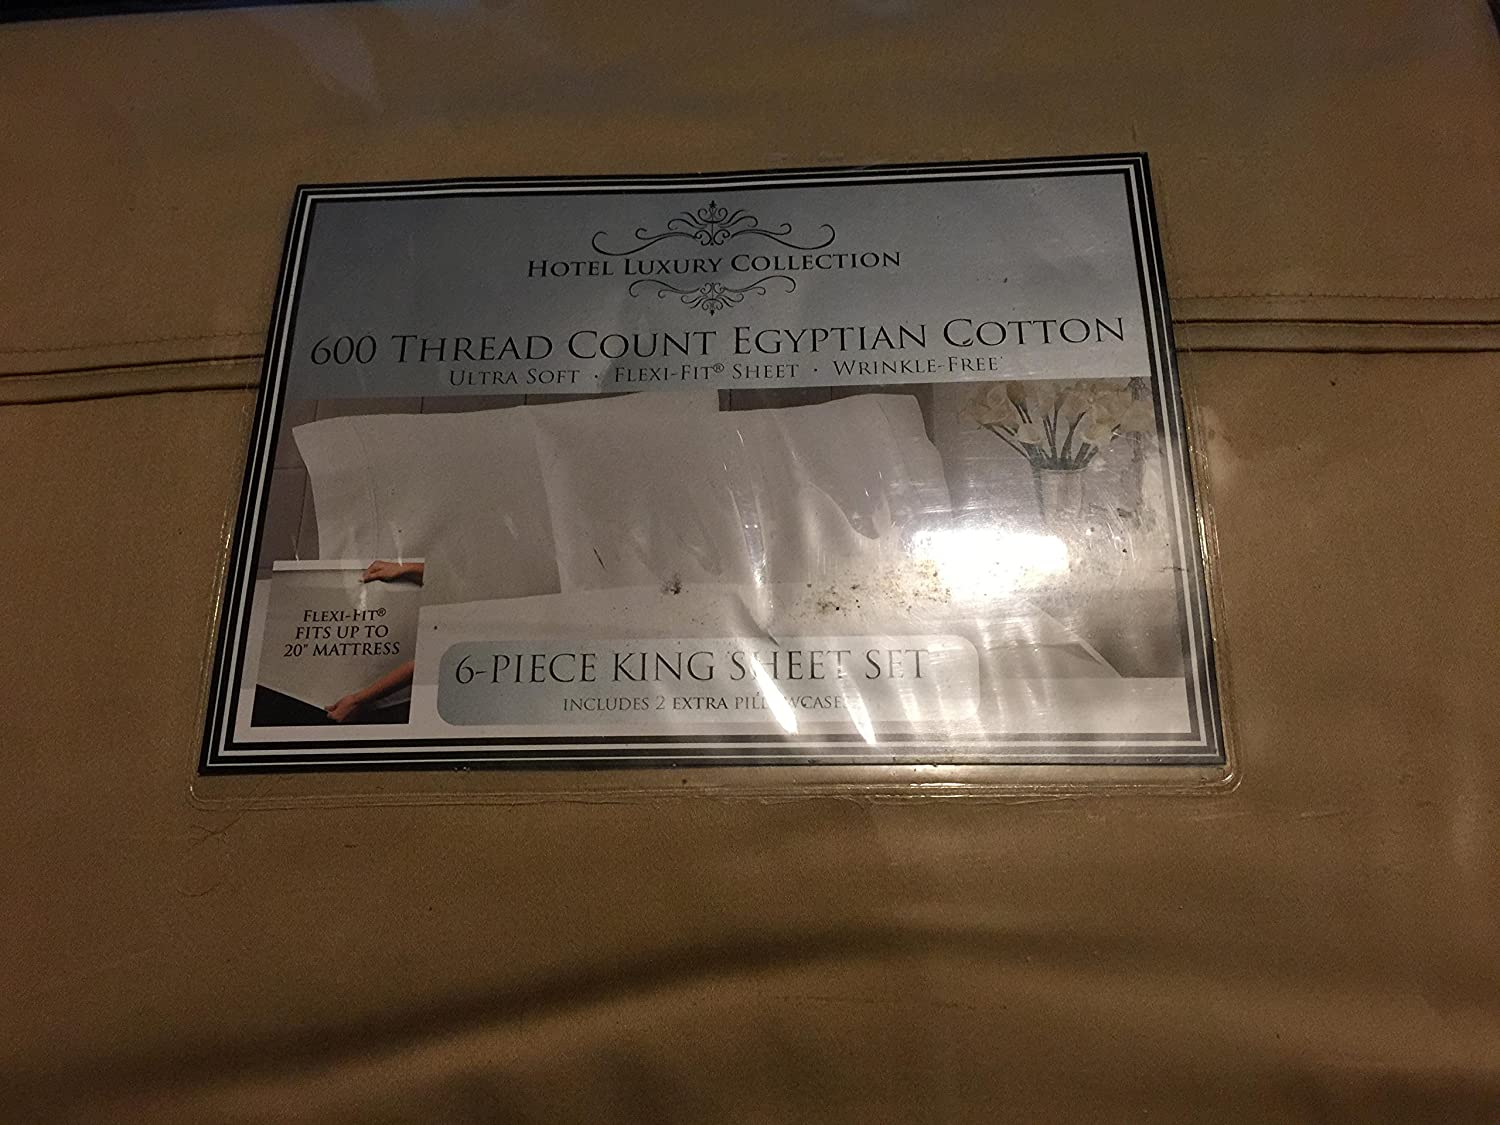 Amazon.com: Hotel Luxury 600 Thread Count Egyption Cotton 6 pc. Sheet Set - King/Gold: Home & Kitchen